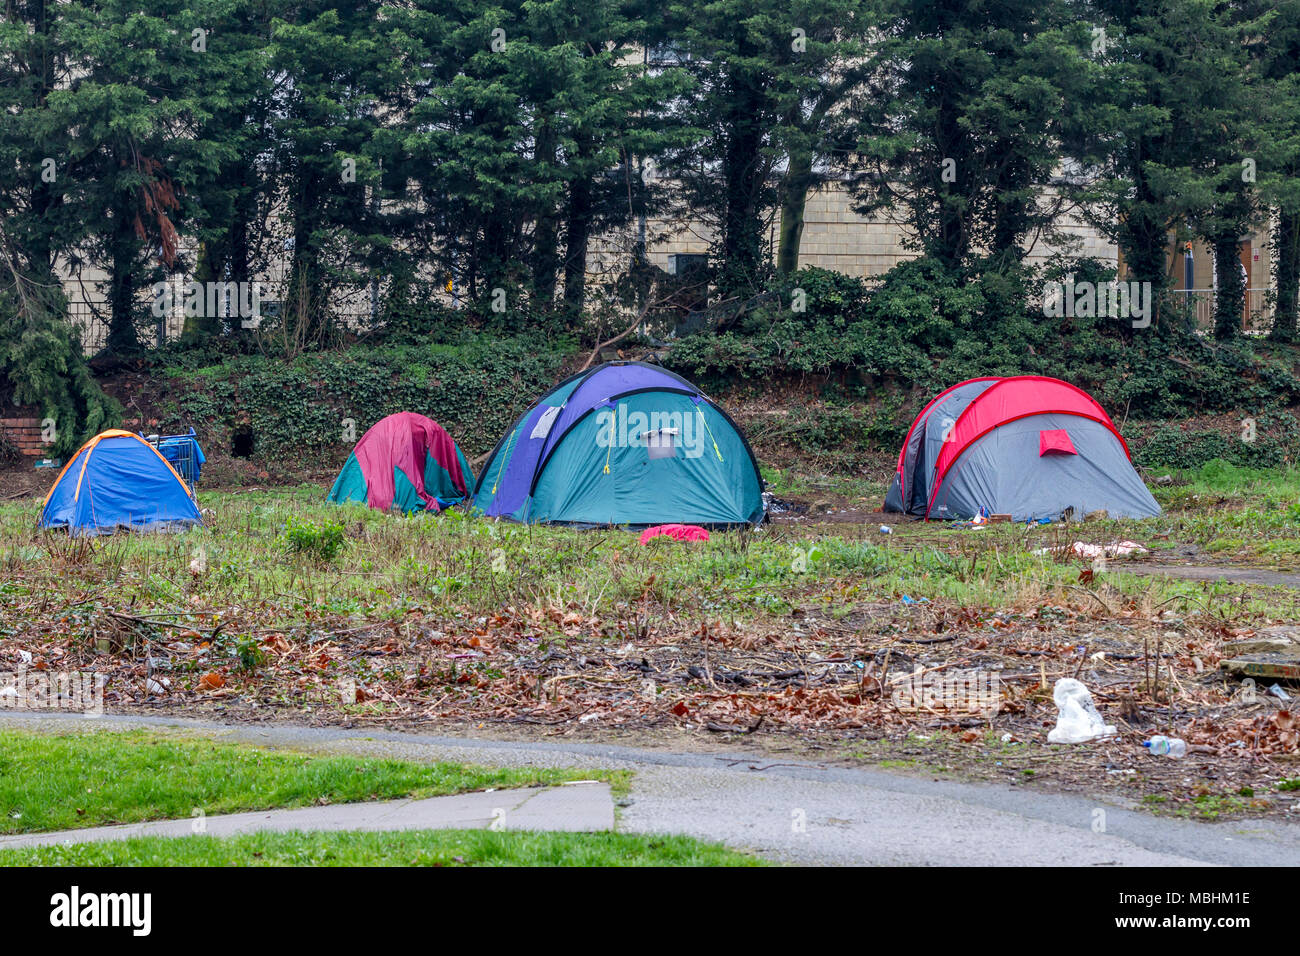 Northampton. 11th Apr, 2018. UK Weather: Another dull miserable day for the homeless having to live in tents on derelick ground near the town centre. Credit: Keith J Smith./Alamy Live News - Stock Image